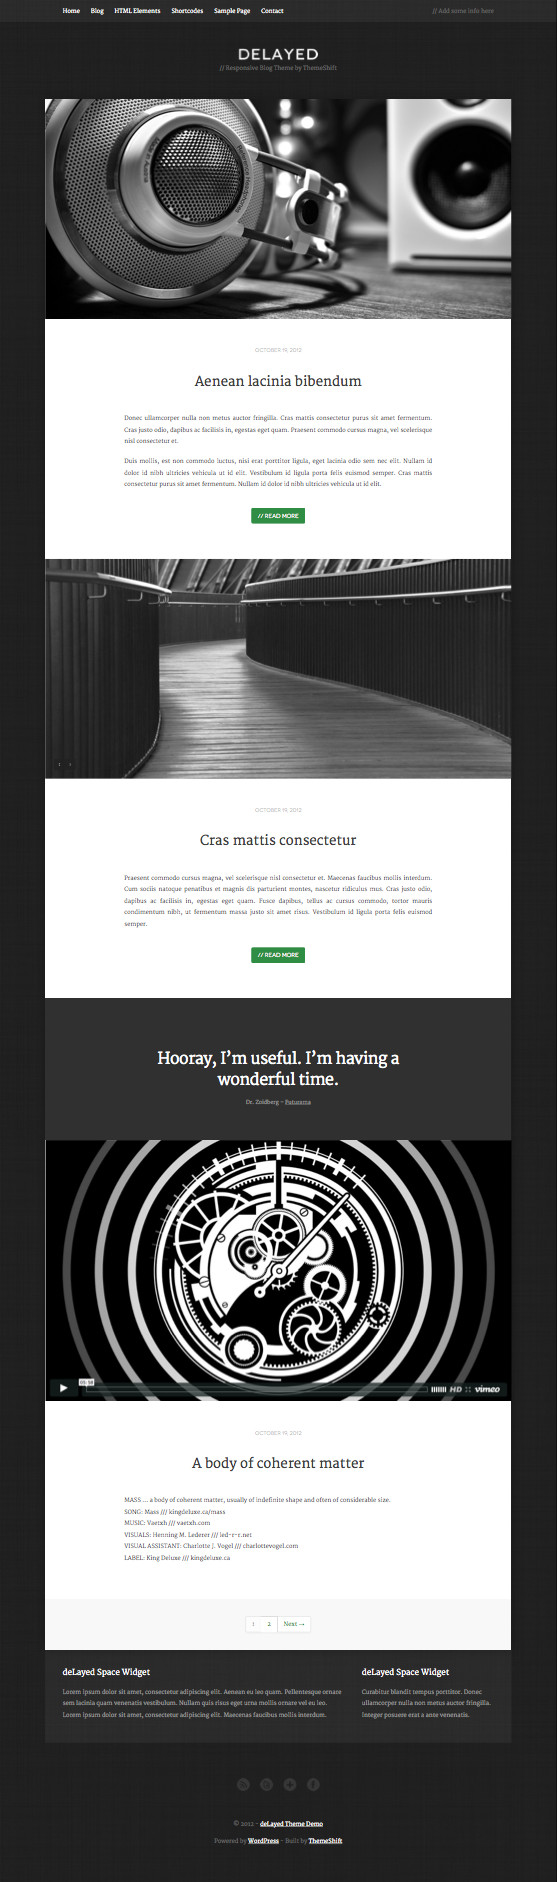 deLayed WordPress Minimal Theme